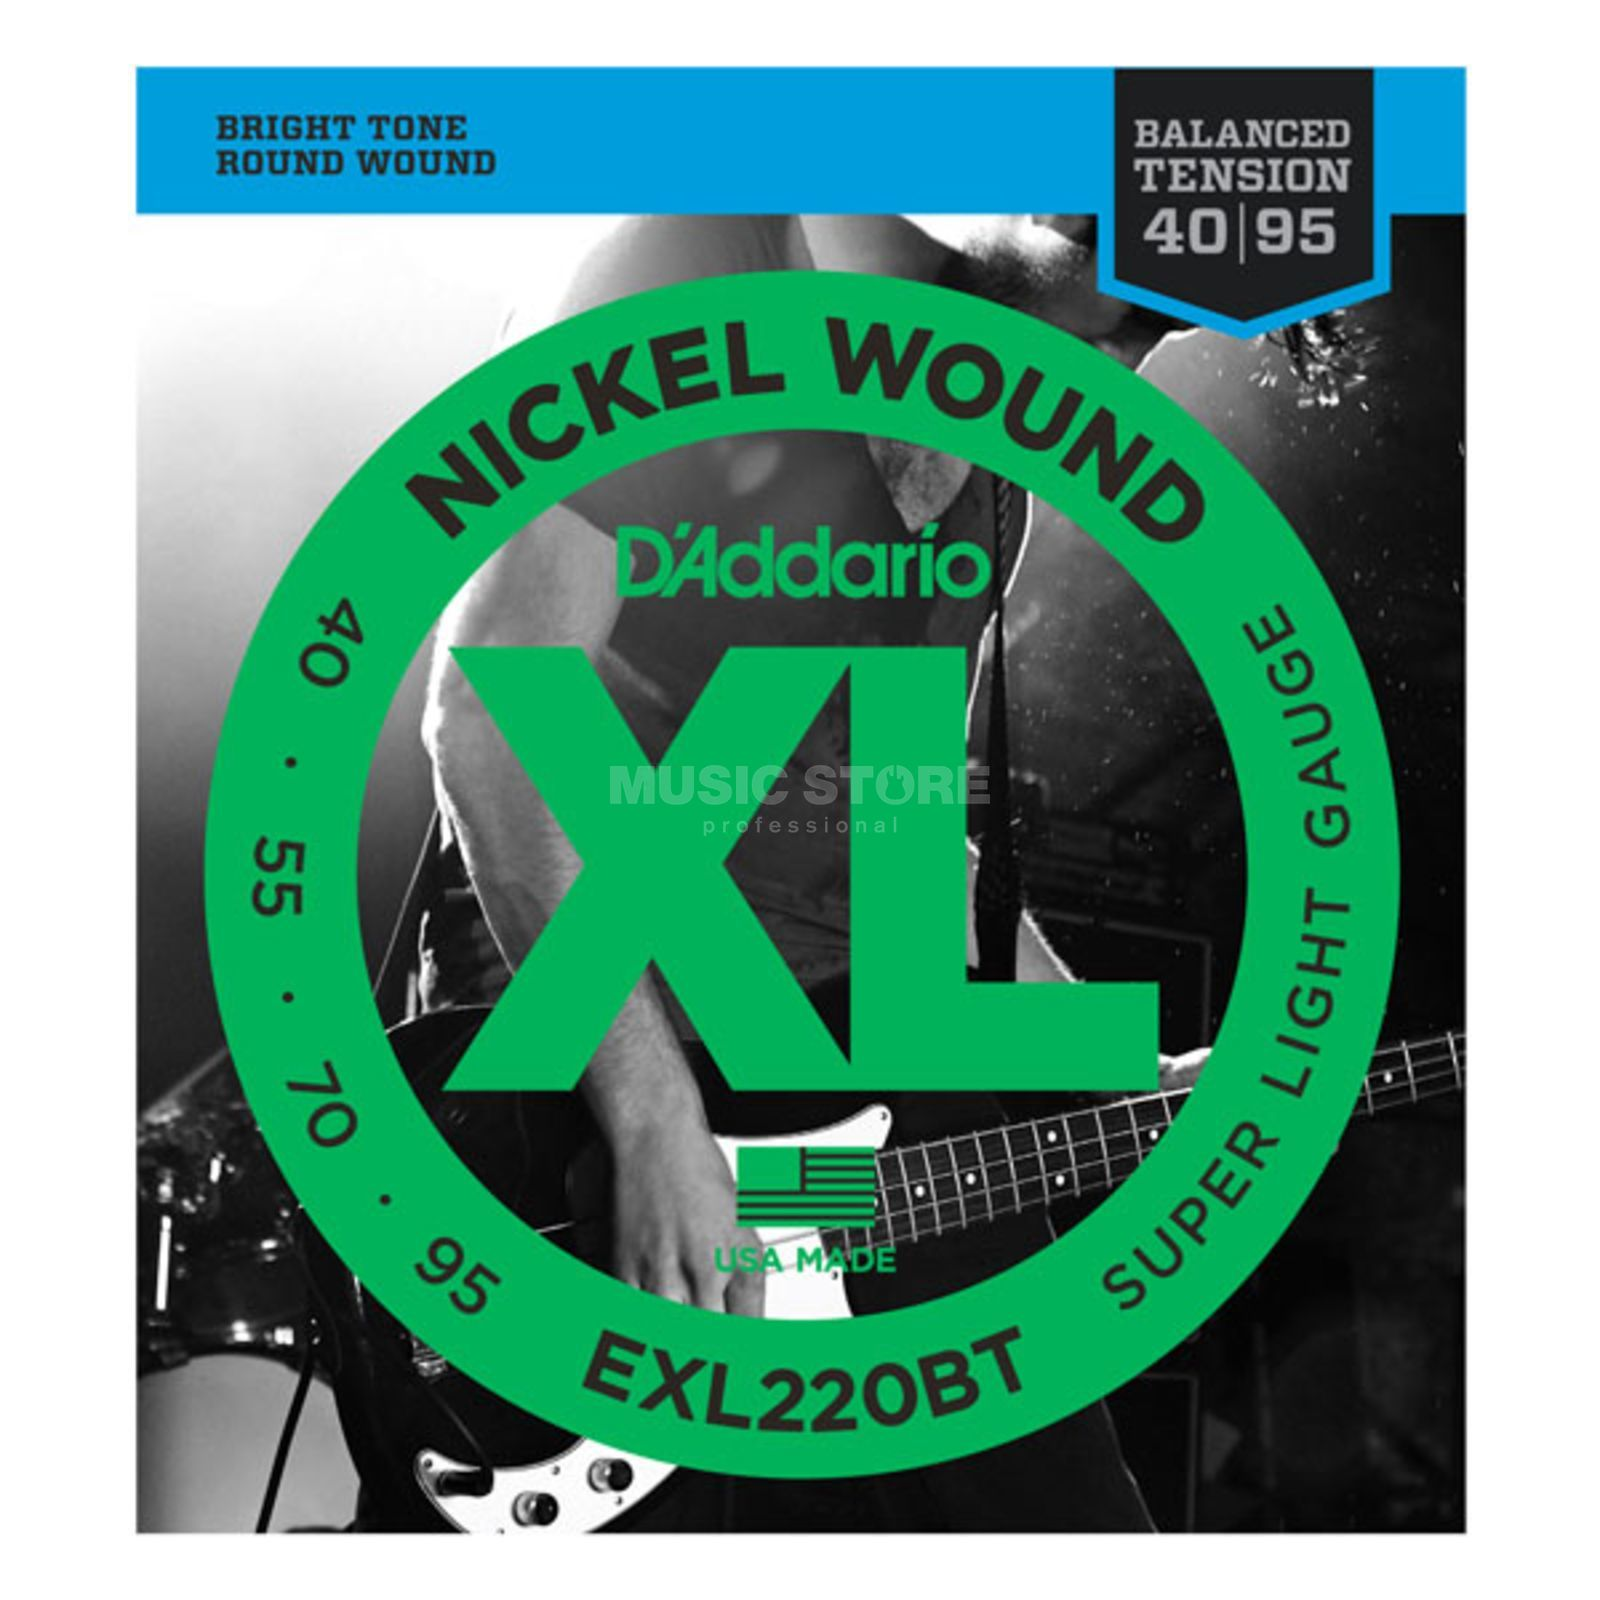 D'Addario Bass Strings XL Balanced 40-95 40-55-70-95, EXL220BT Immagine prodotto